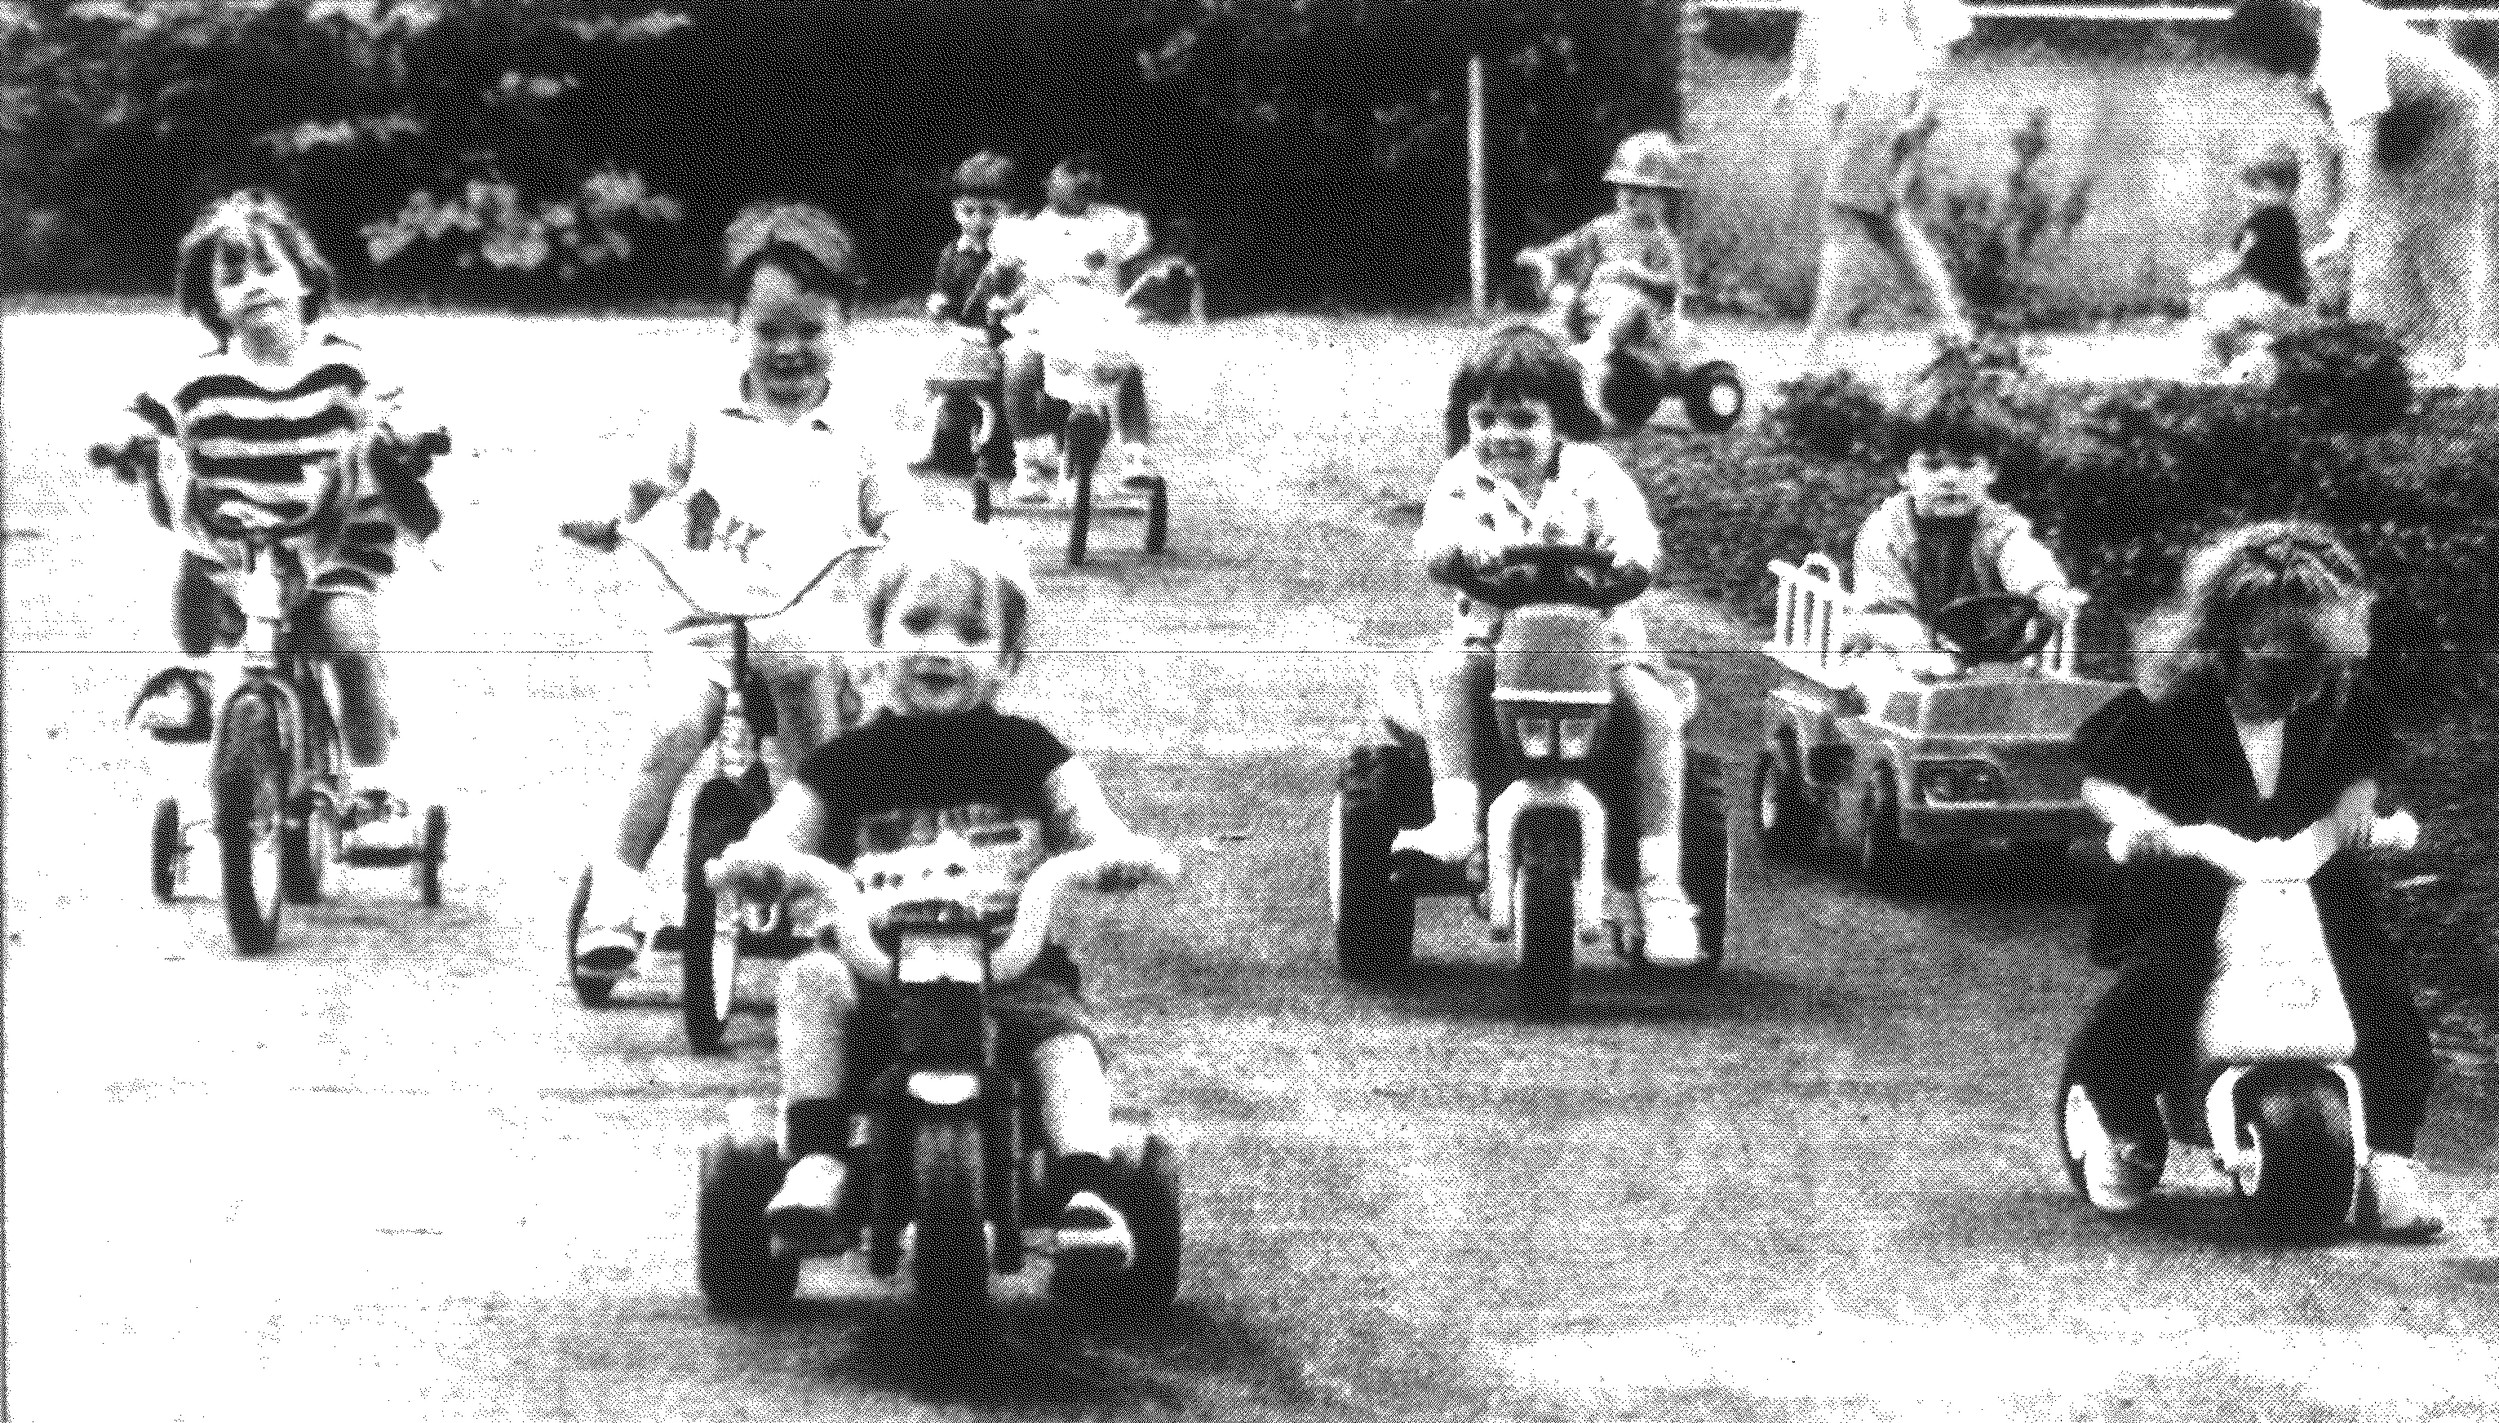 1992 - Two-year-olds at First Presbyterian Church participated Tuesday in their first Riding Toy Parade, according to teacher Mary Garland Roddey.